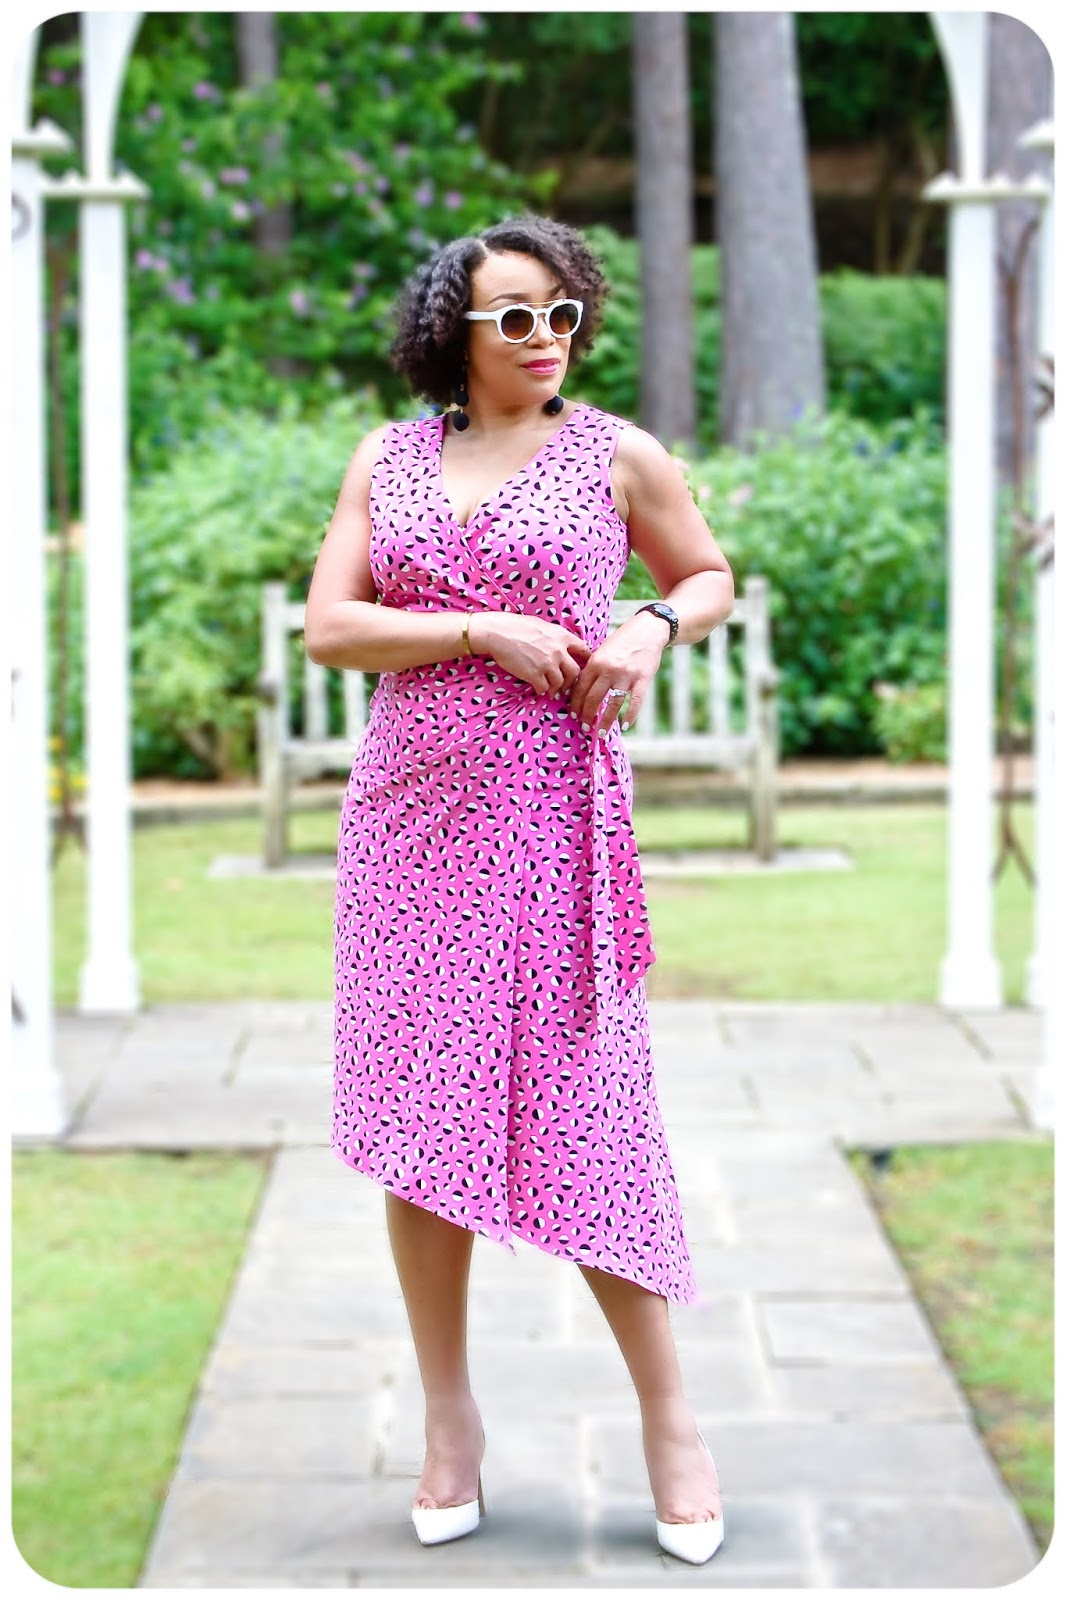 Vogue 7898 - Wrap Dress - Erica Bunker DIY Style!